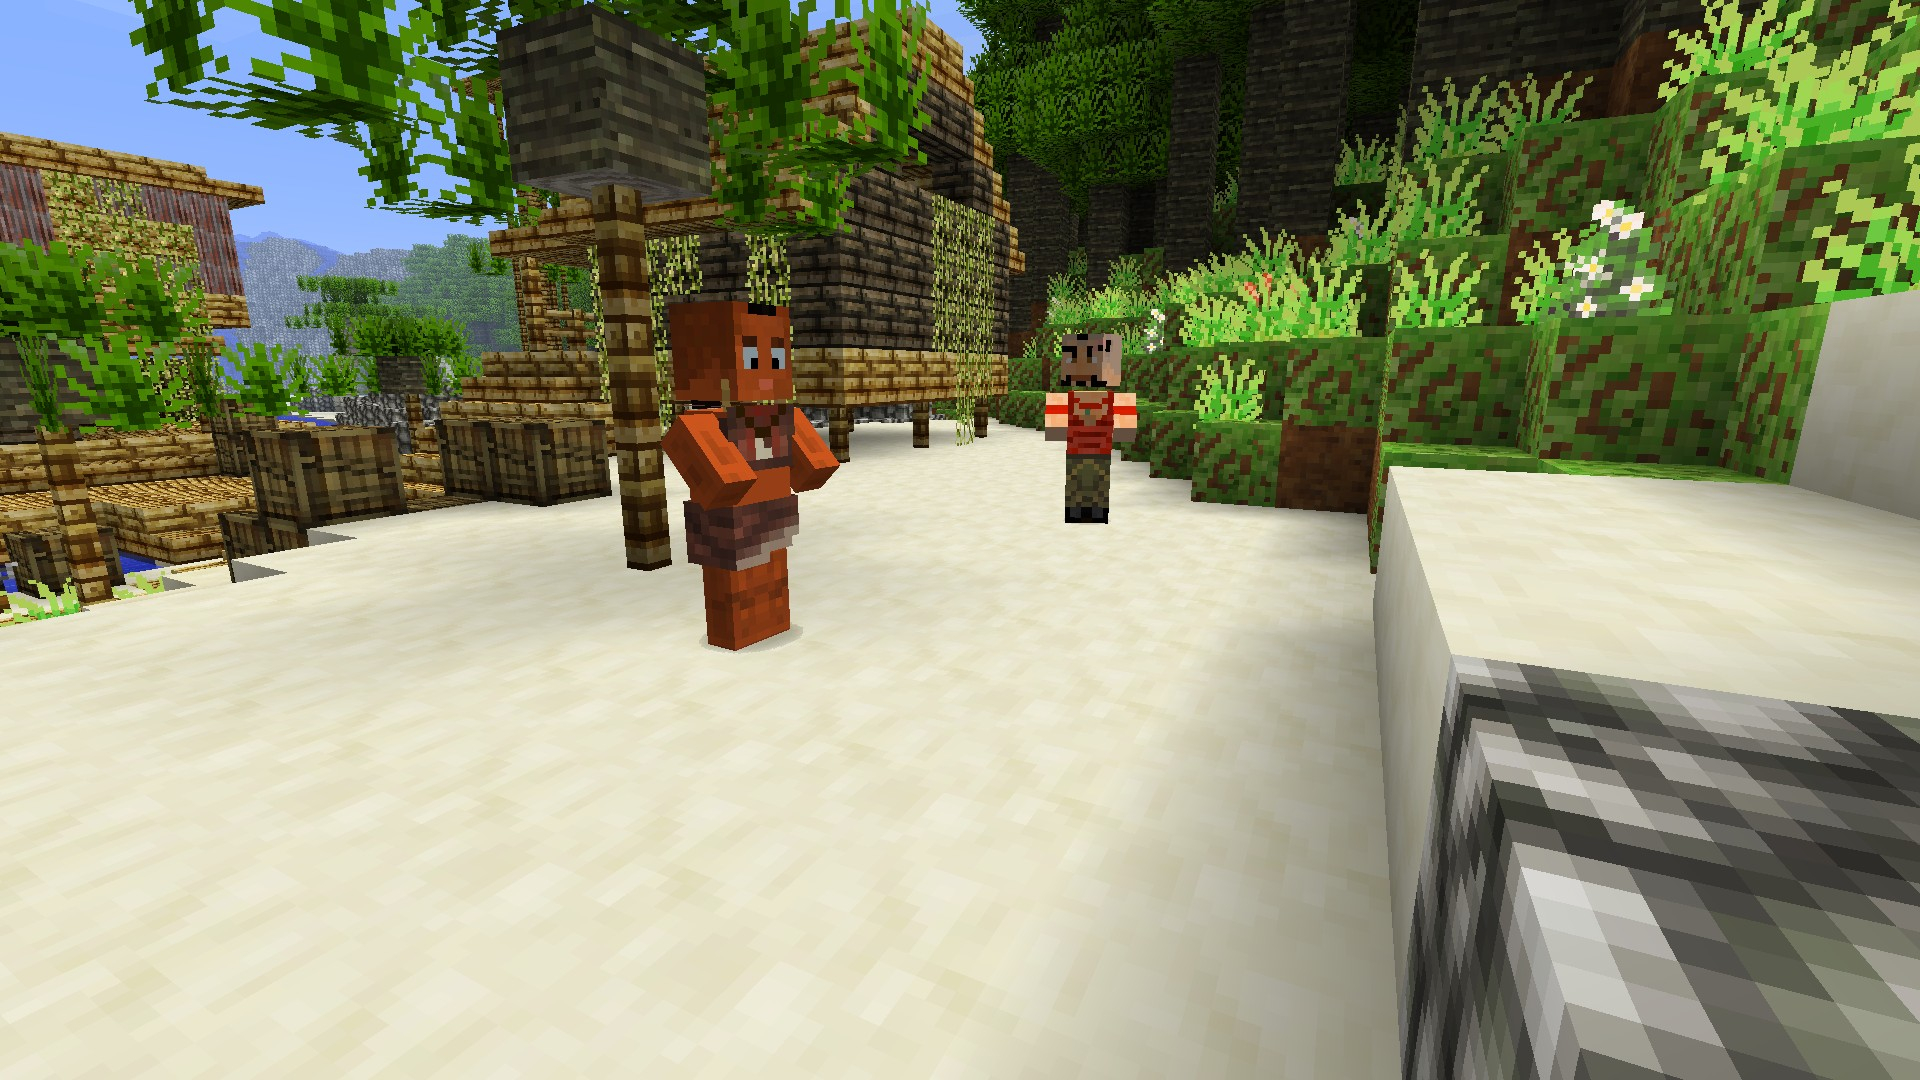 Far Cry 3 Comes To Minecraft Ubisoft Releases Free Themed Map And